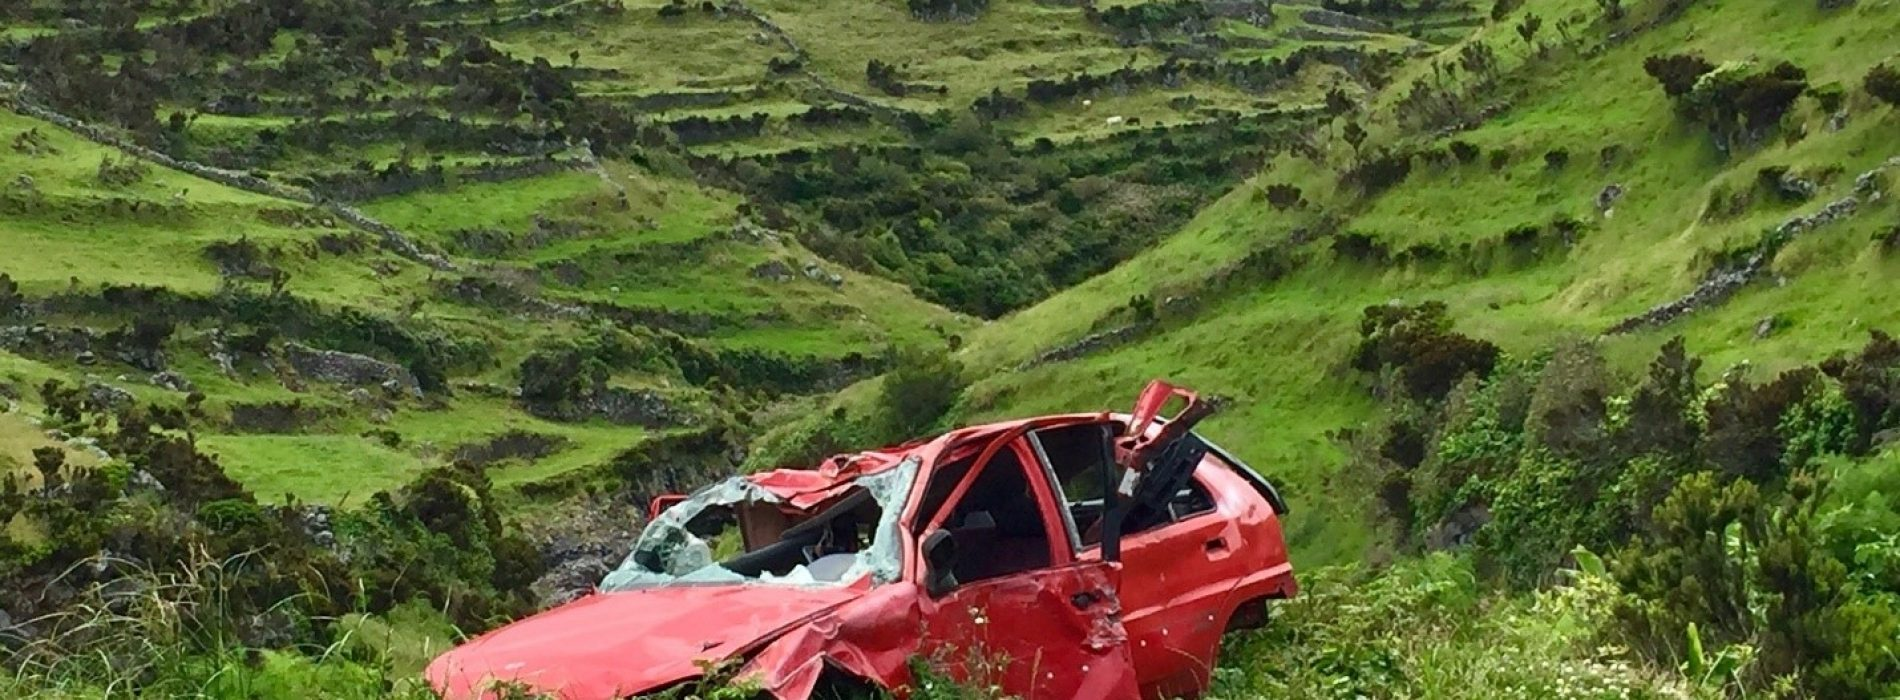 How to Reduce Road Accident Risks